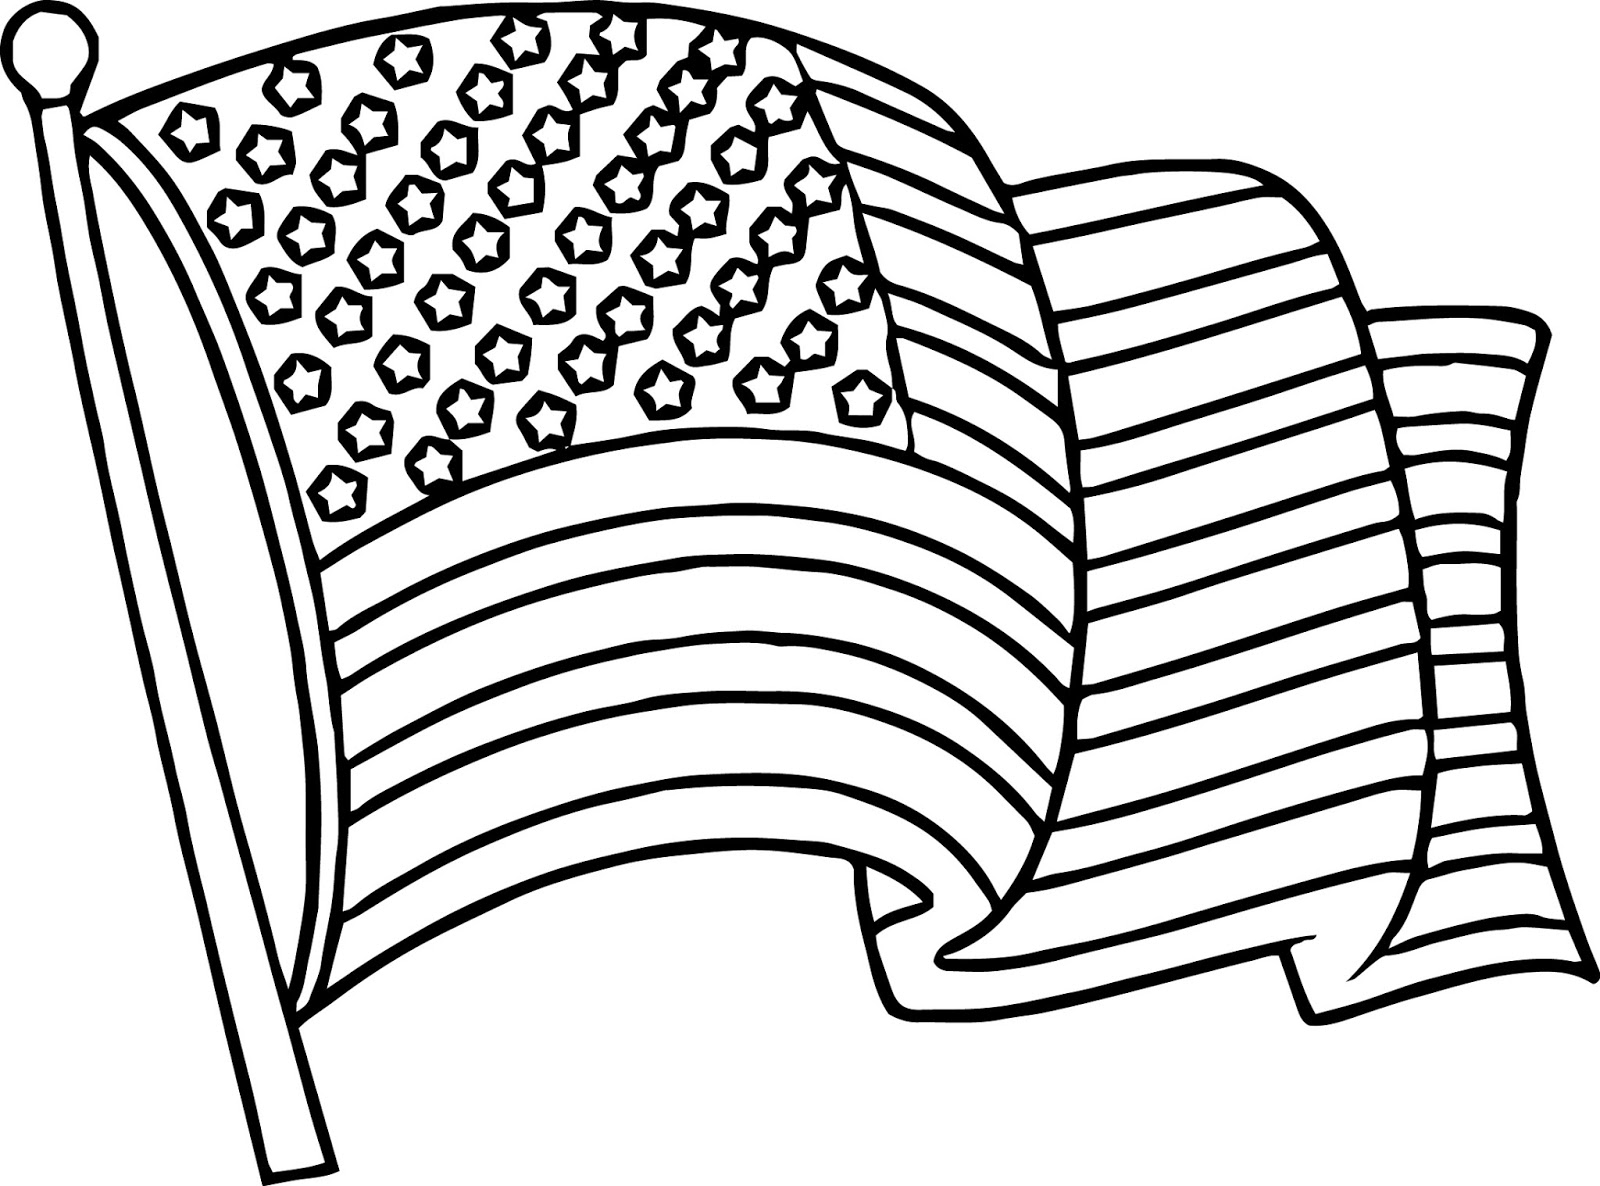 coloring sheet american flag american flag coloring page for the love of the country coloring american flag sheet